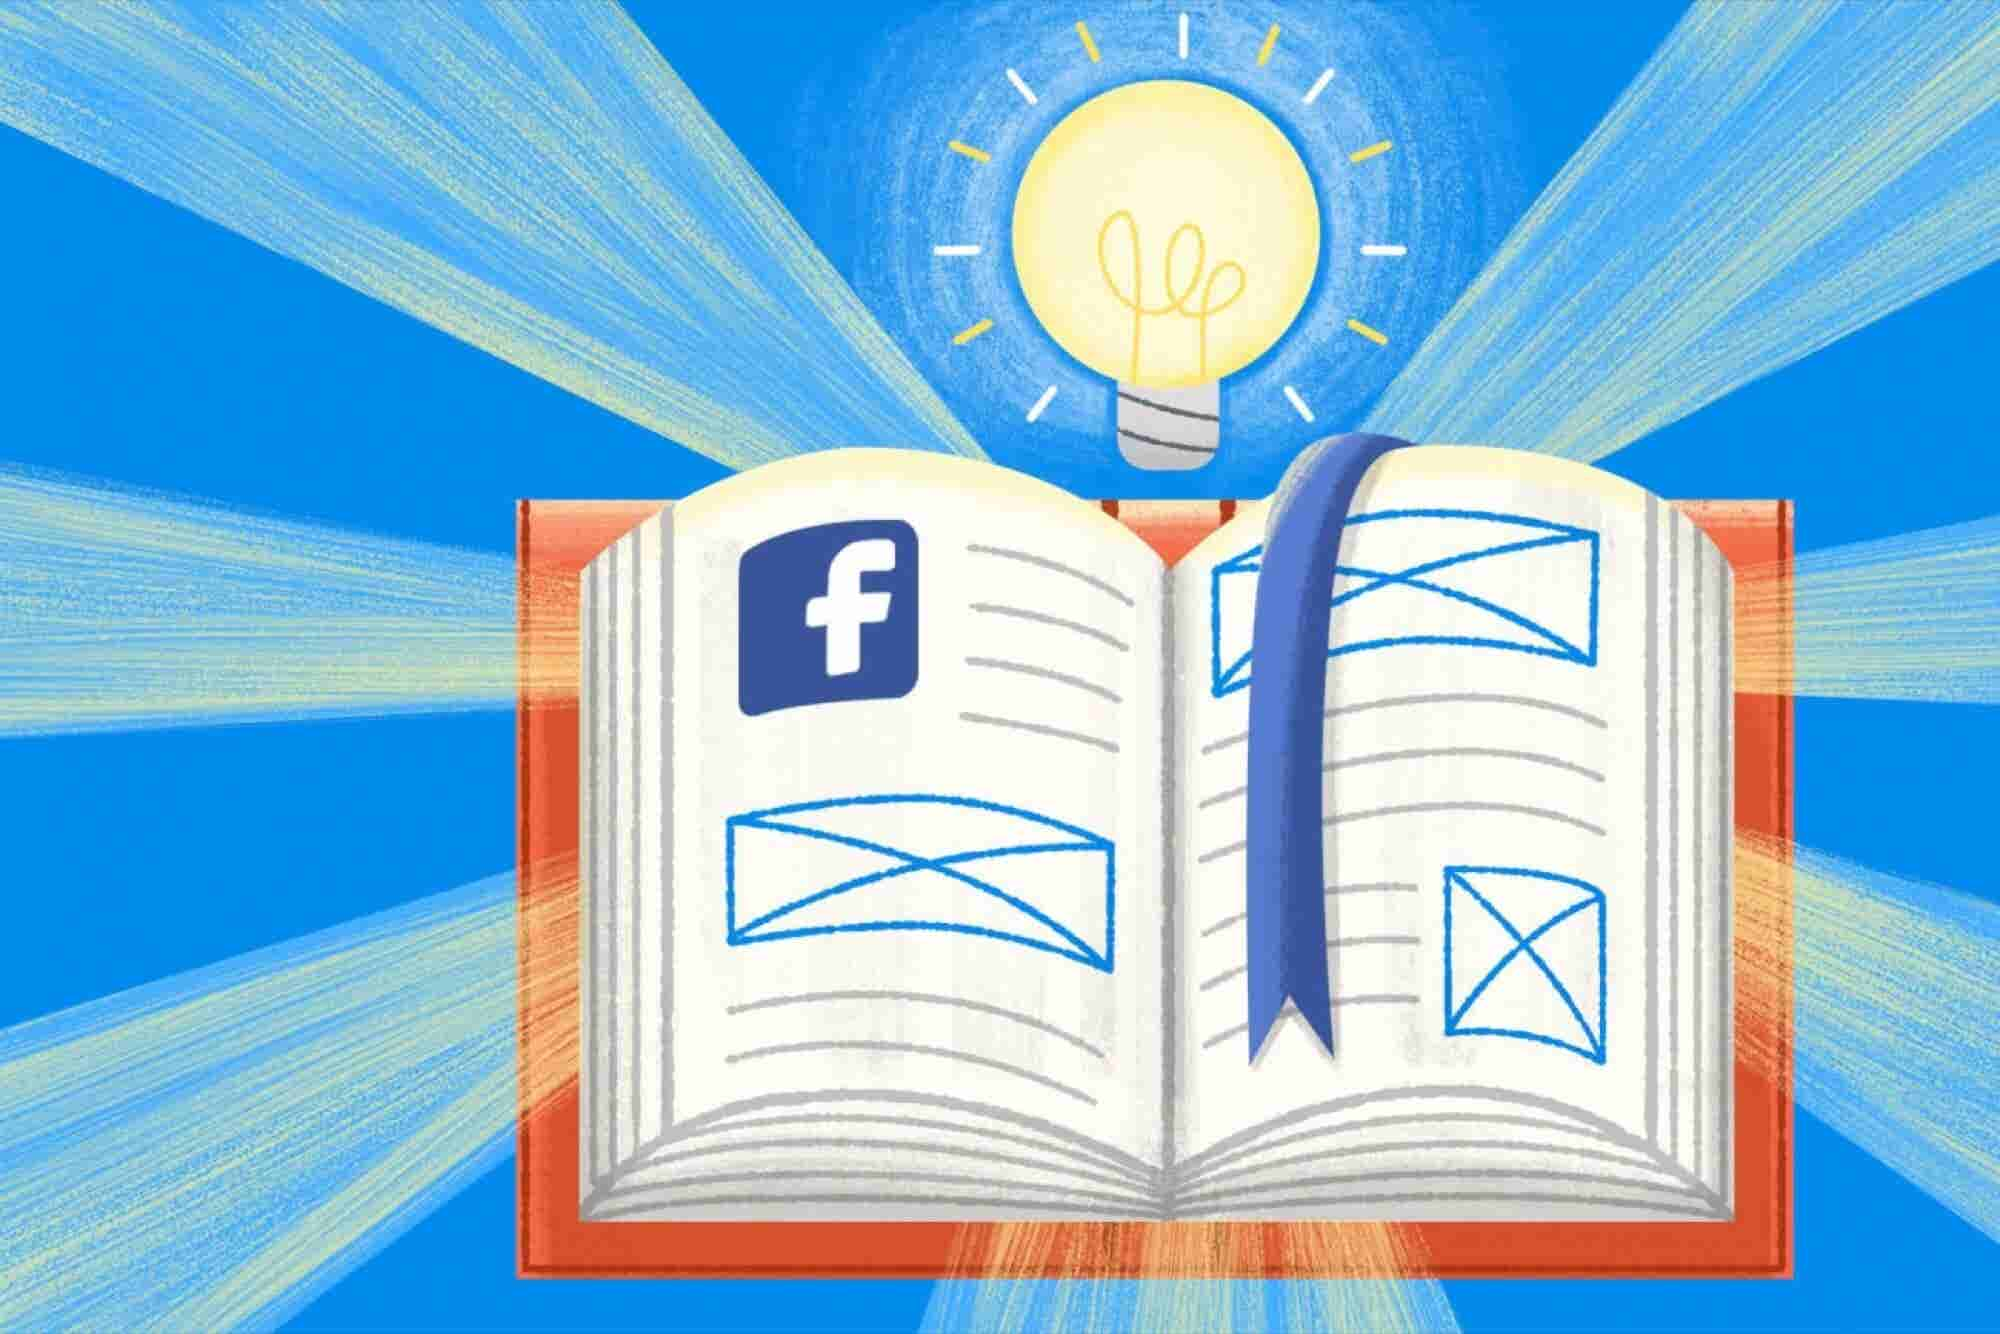 The Complete Guide to Getting Started With Facebook Ads